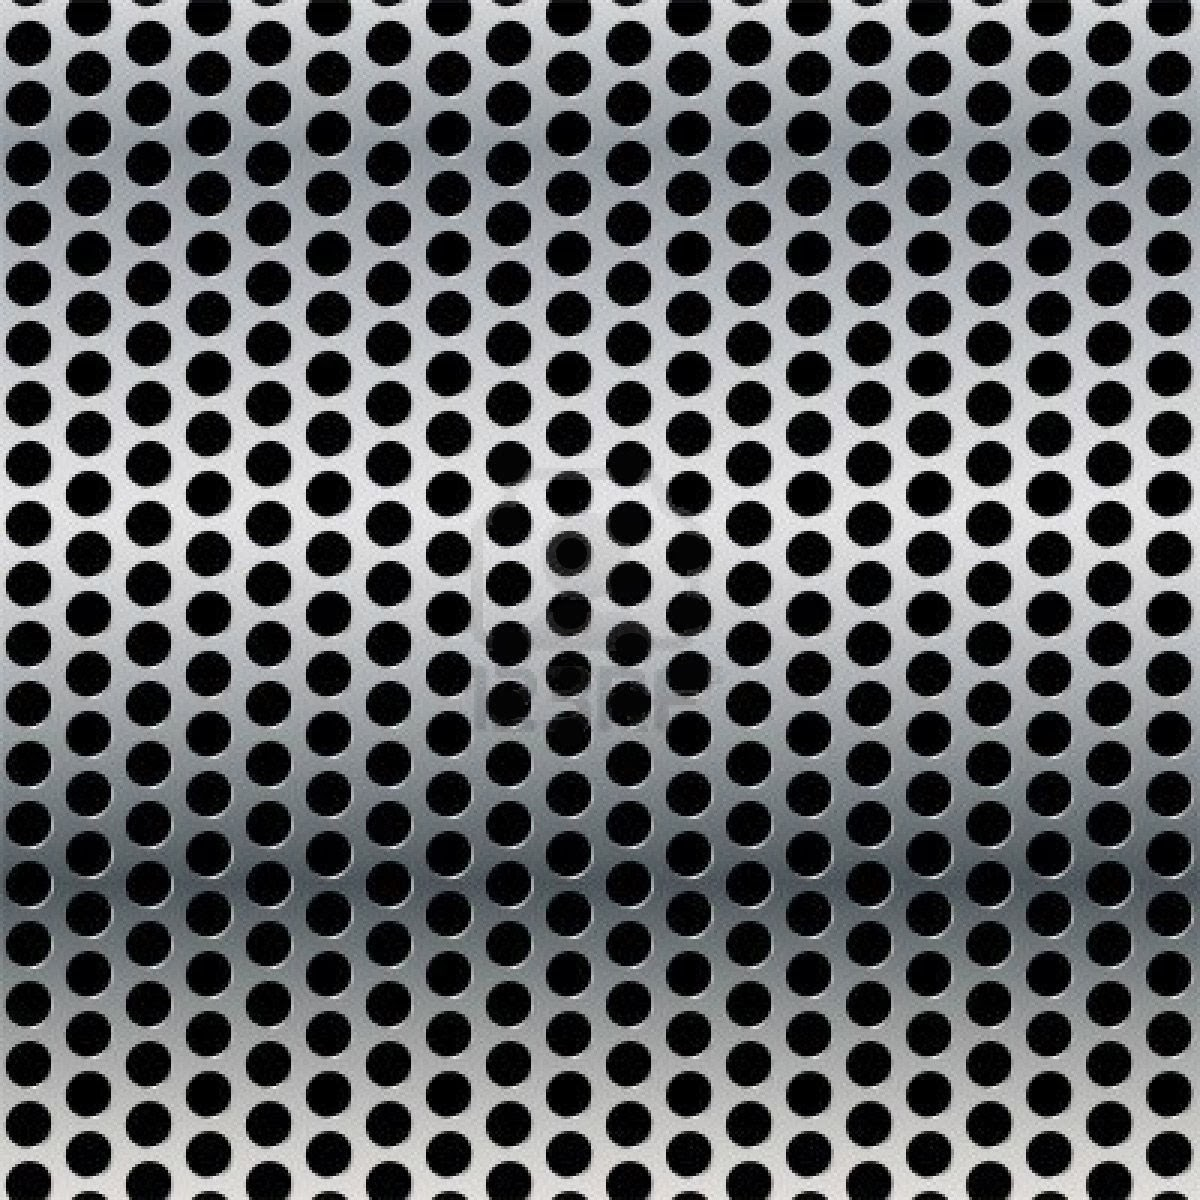 Perforated Stainless Steel And How To Design It For Better